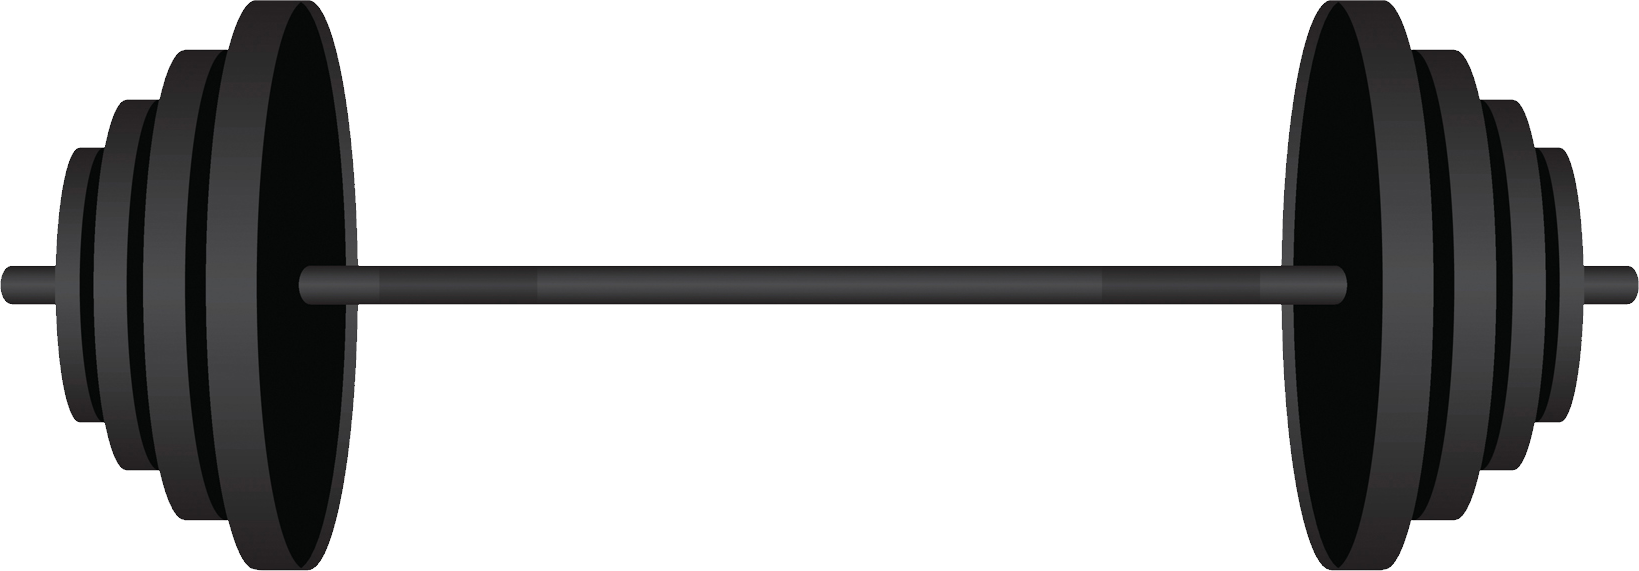 barbell hd png transparent barbell hd png images pluspng